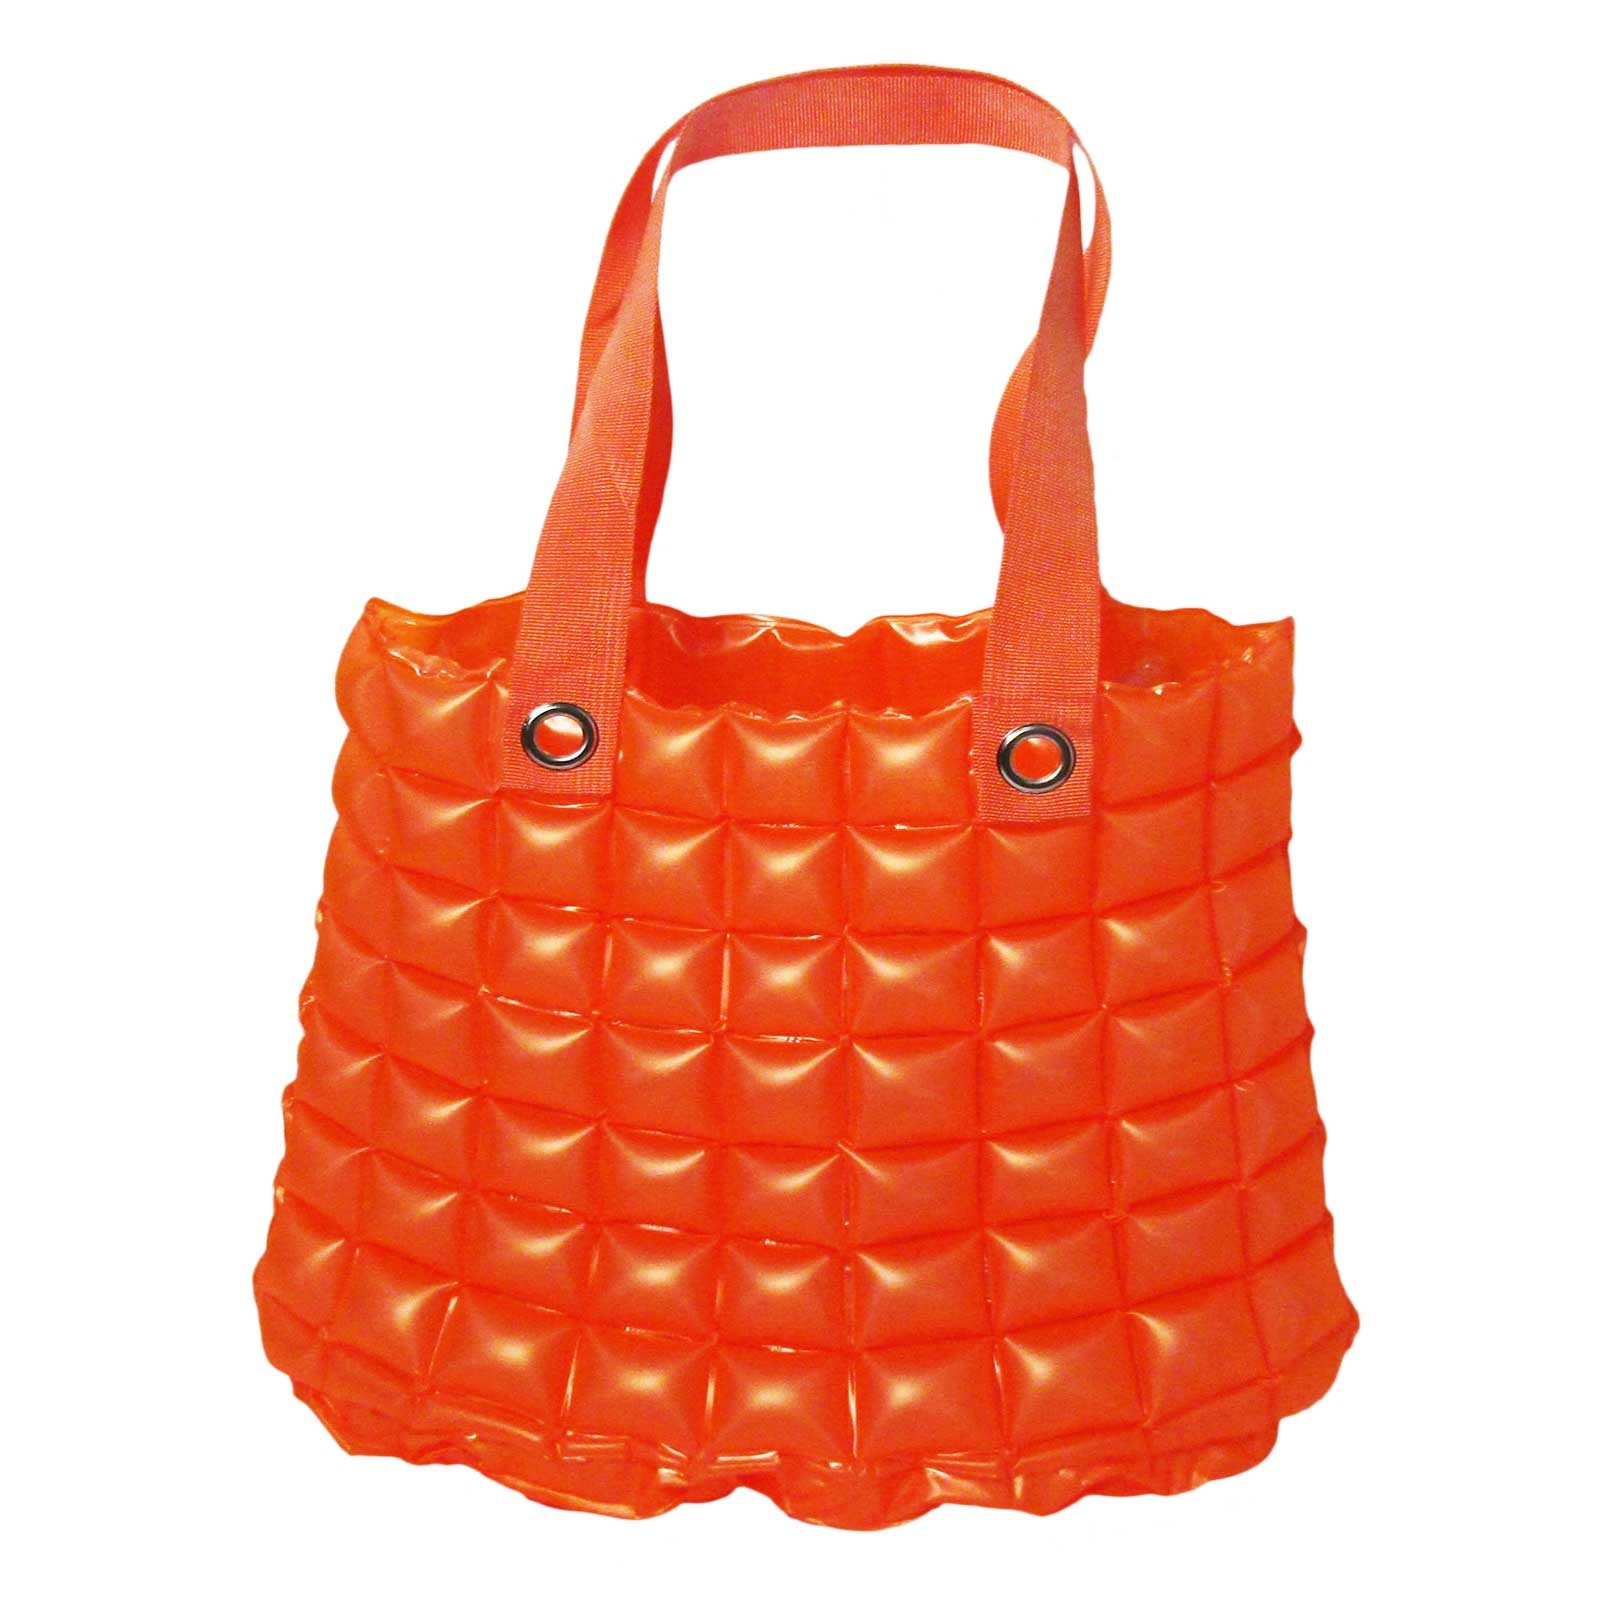 Chic Inflatable Orange Bubble Tote